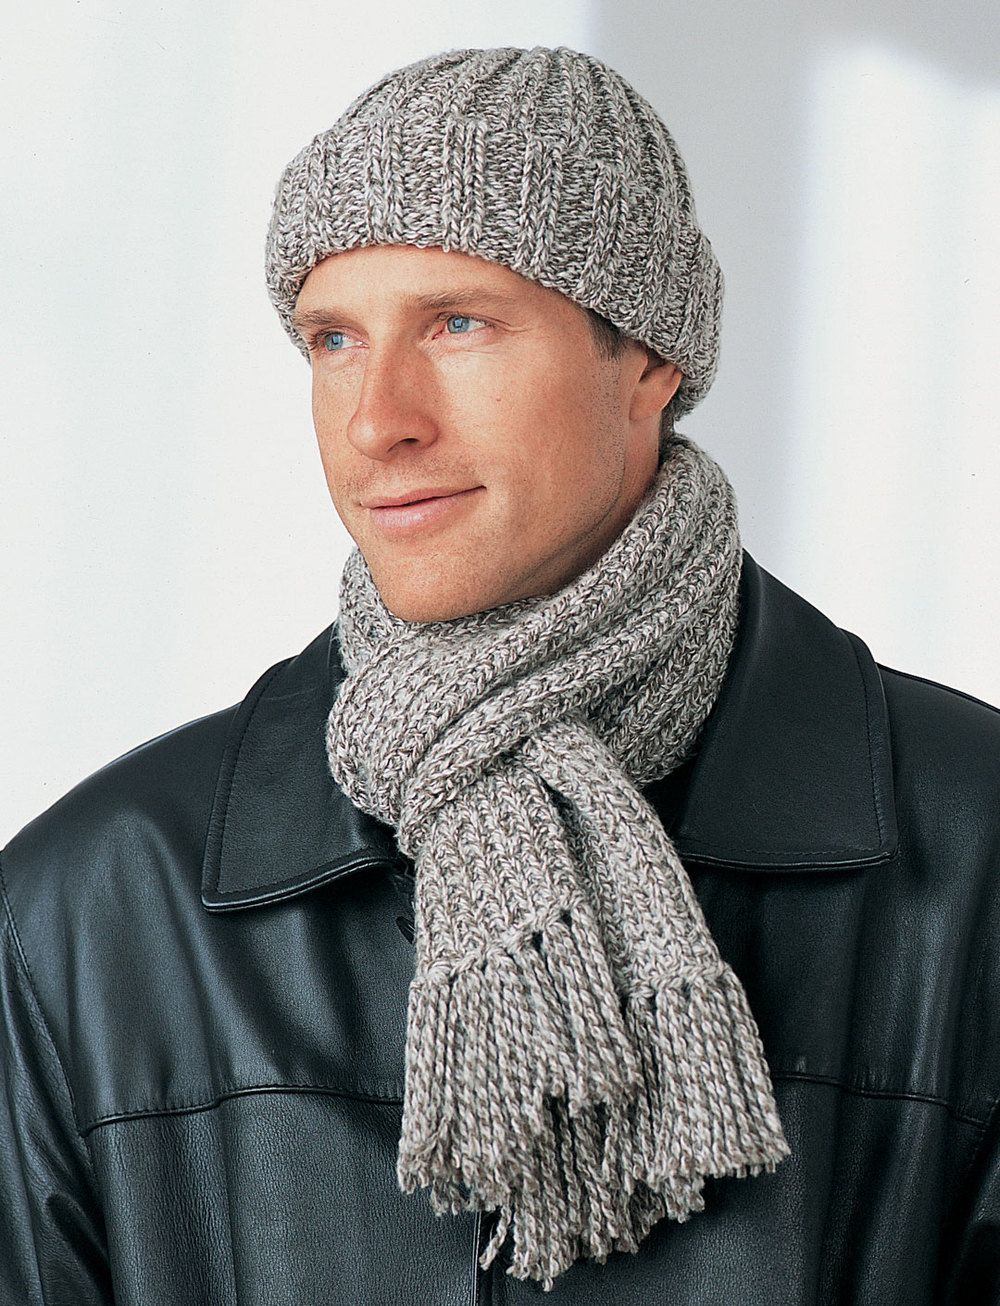 Men\'s Winter Hat and Scarf | Winter months, Knitting patterns and ...